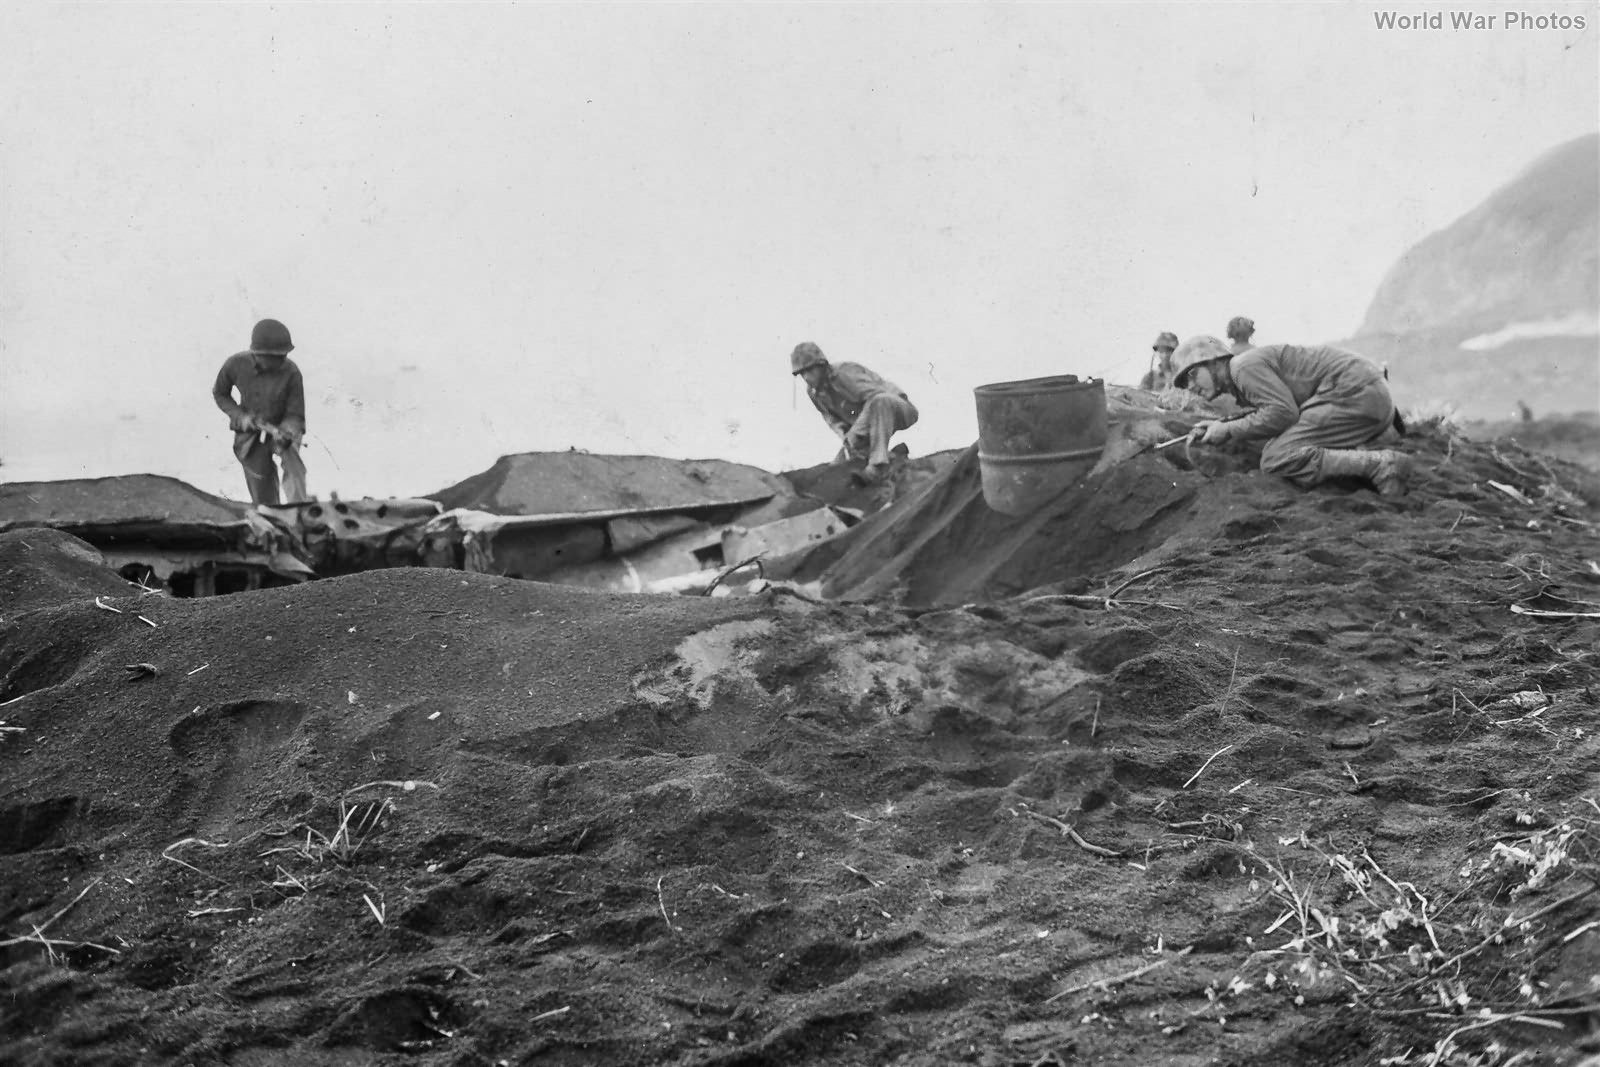 Marines clear sniper from aircraft wreck on Iwo Jima 22feb